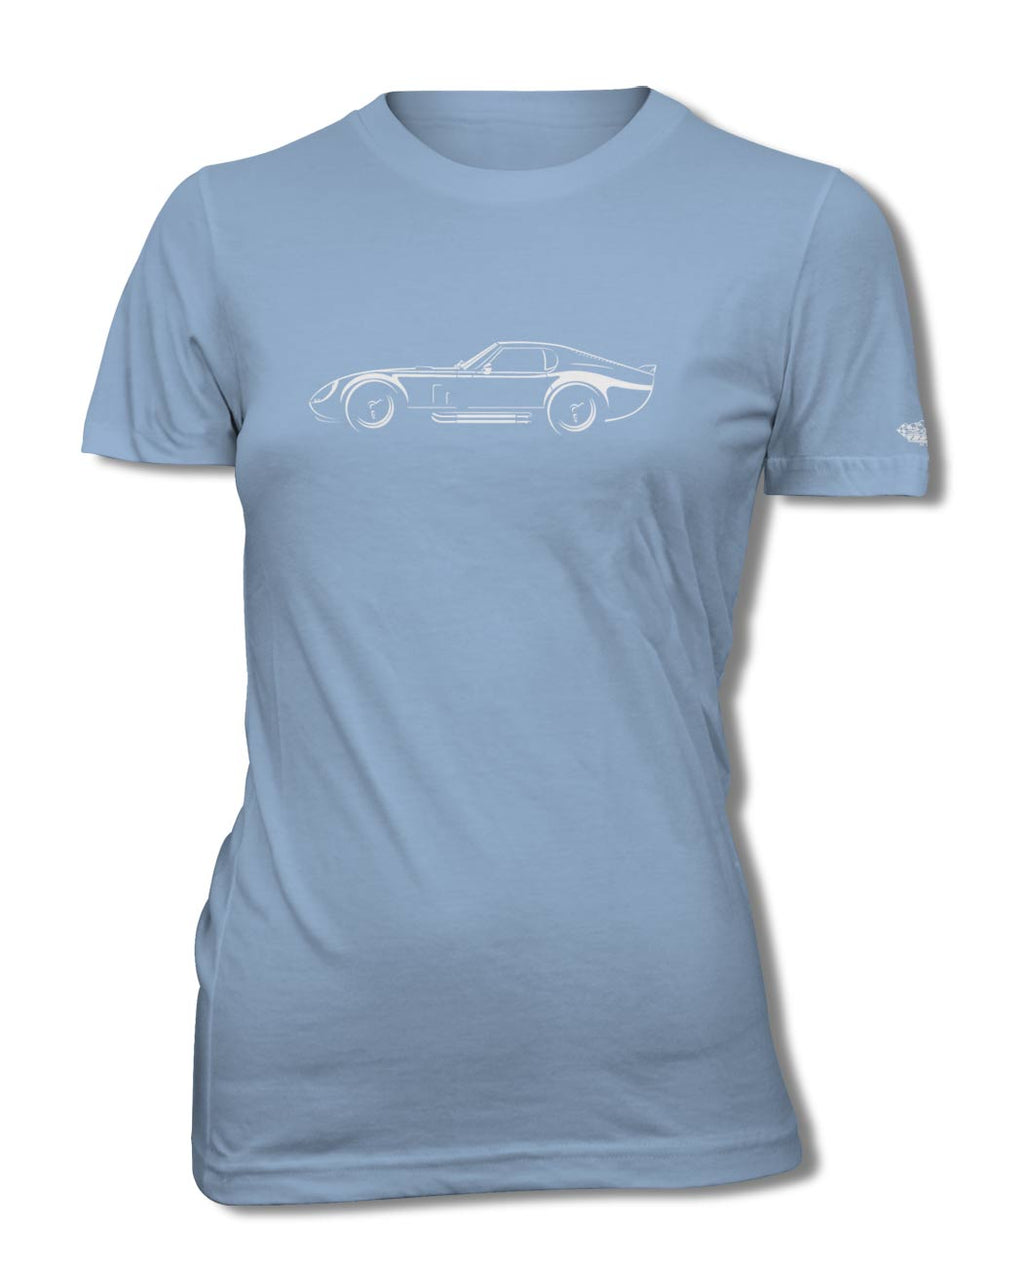 1964 Daytona Coupe Art of Light T-Shirt - Women